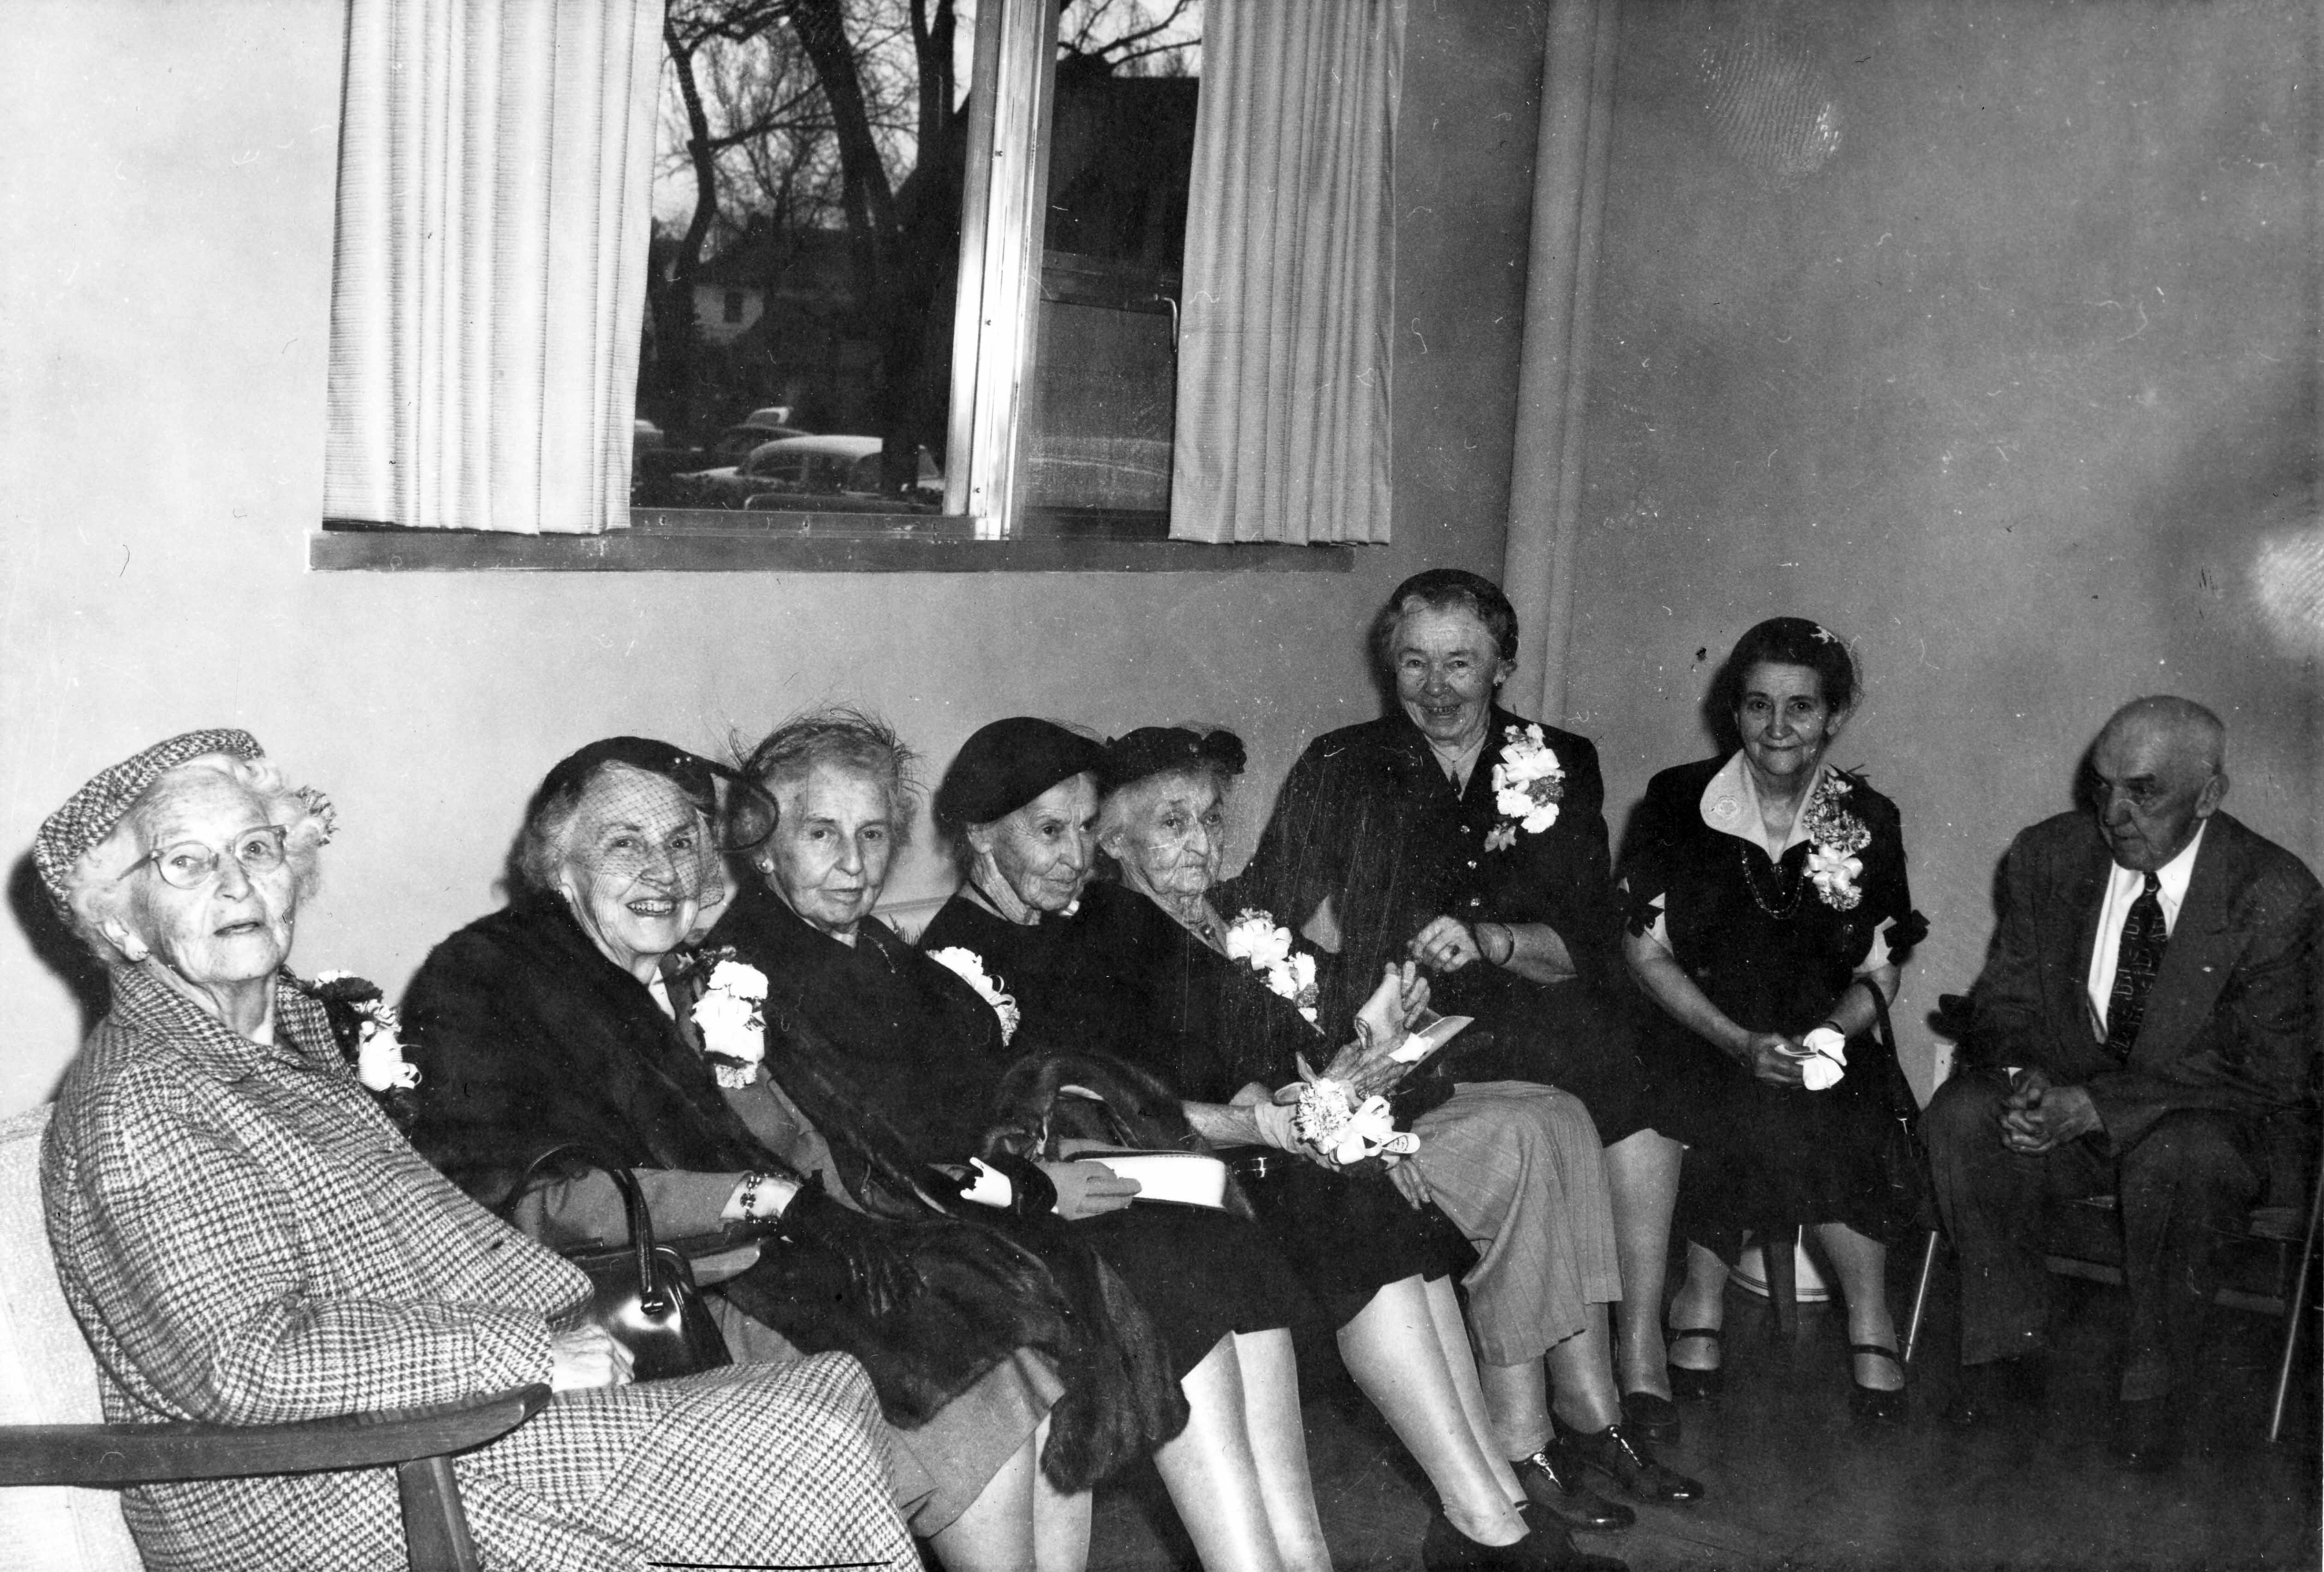 The children of William B. Mitchell at the dedication of Mitchell Hall, October 26, 1958